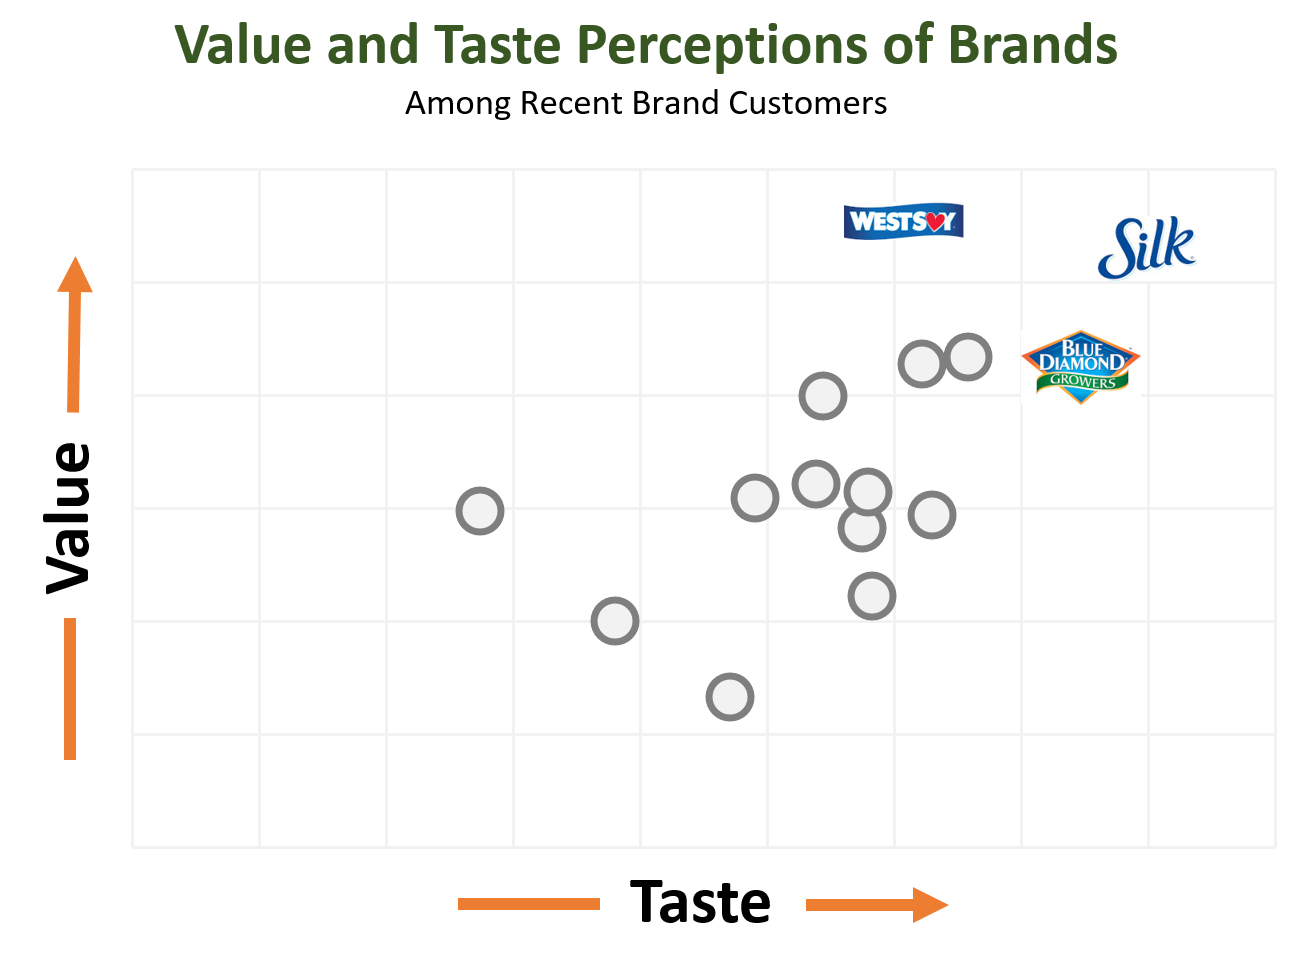 Plant-Based Brands - Taste and Value